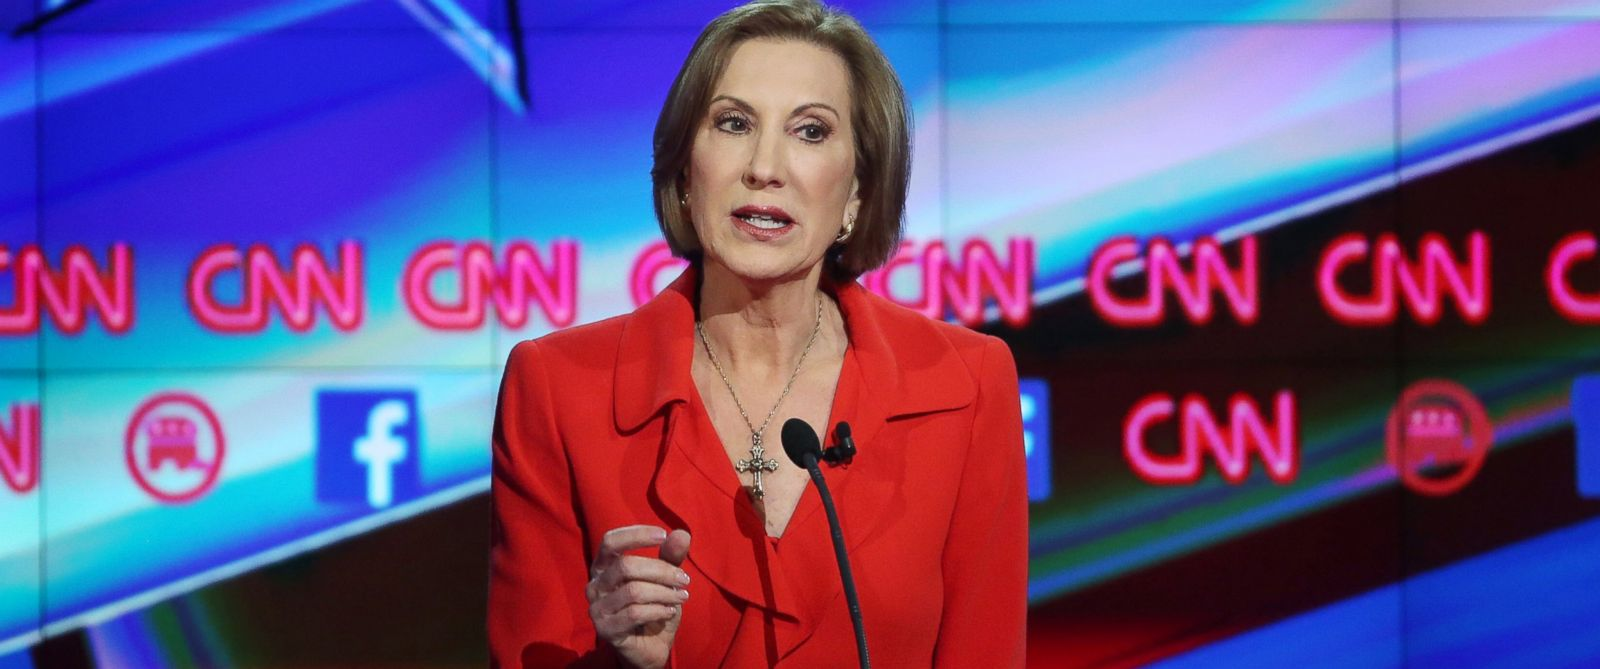 PHOTO: Republican presidential candidate Carly Fiorina speaks during the CNN Republican presidential debate on Dec. 15, 2015 in Las Vegas.